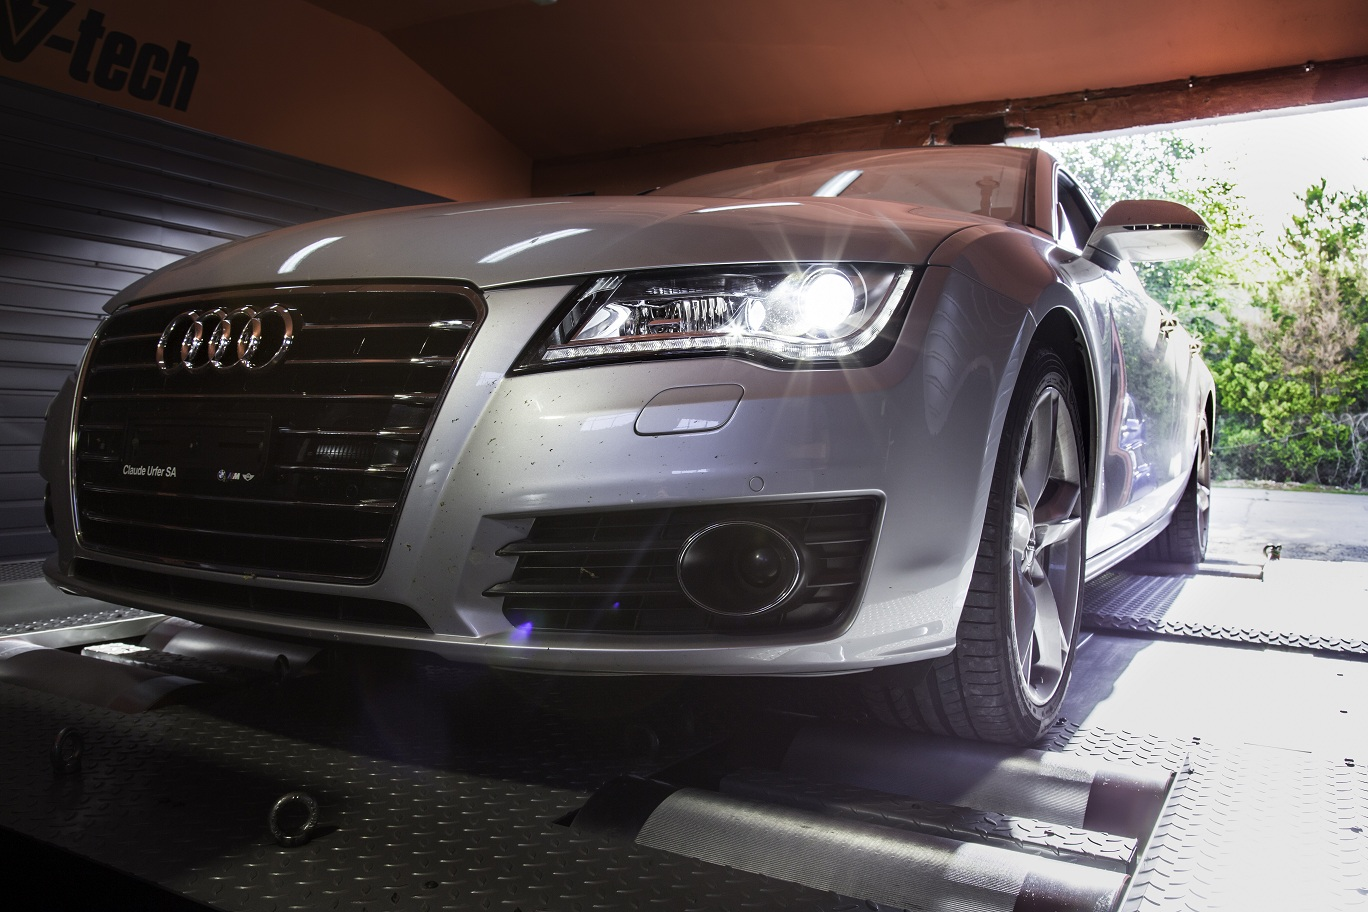 3 0 tfsi chiptuning w audi a7 stage 1 400km w s. Black Bedroom Furniture Sets. Home Design Ideas